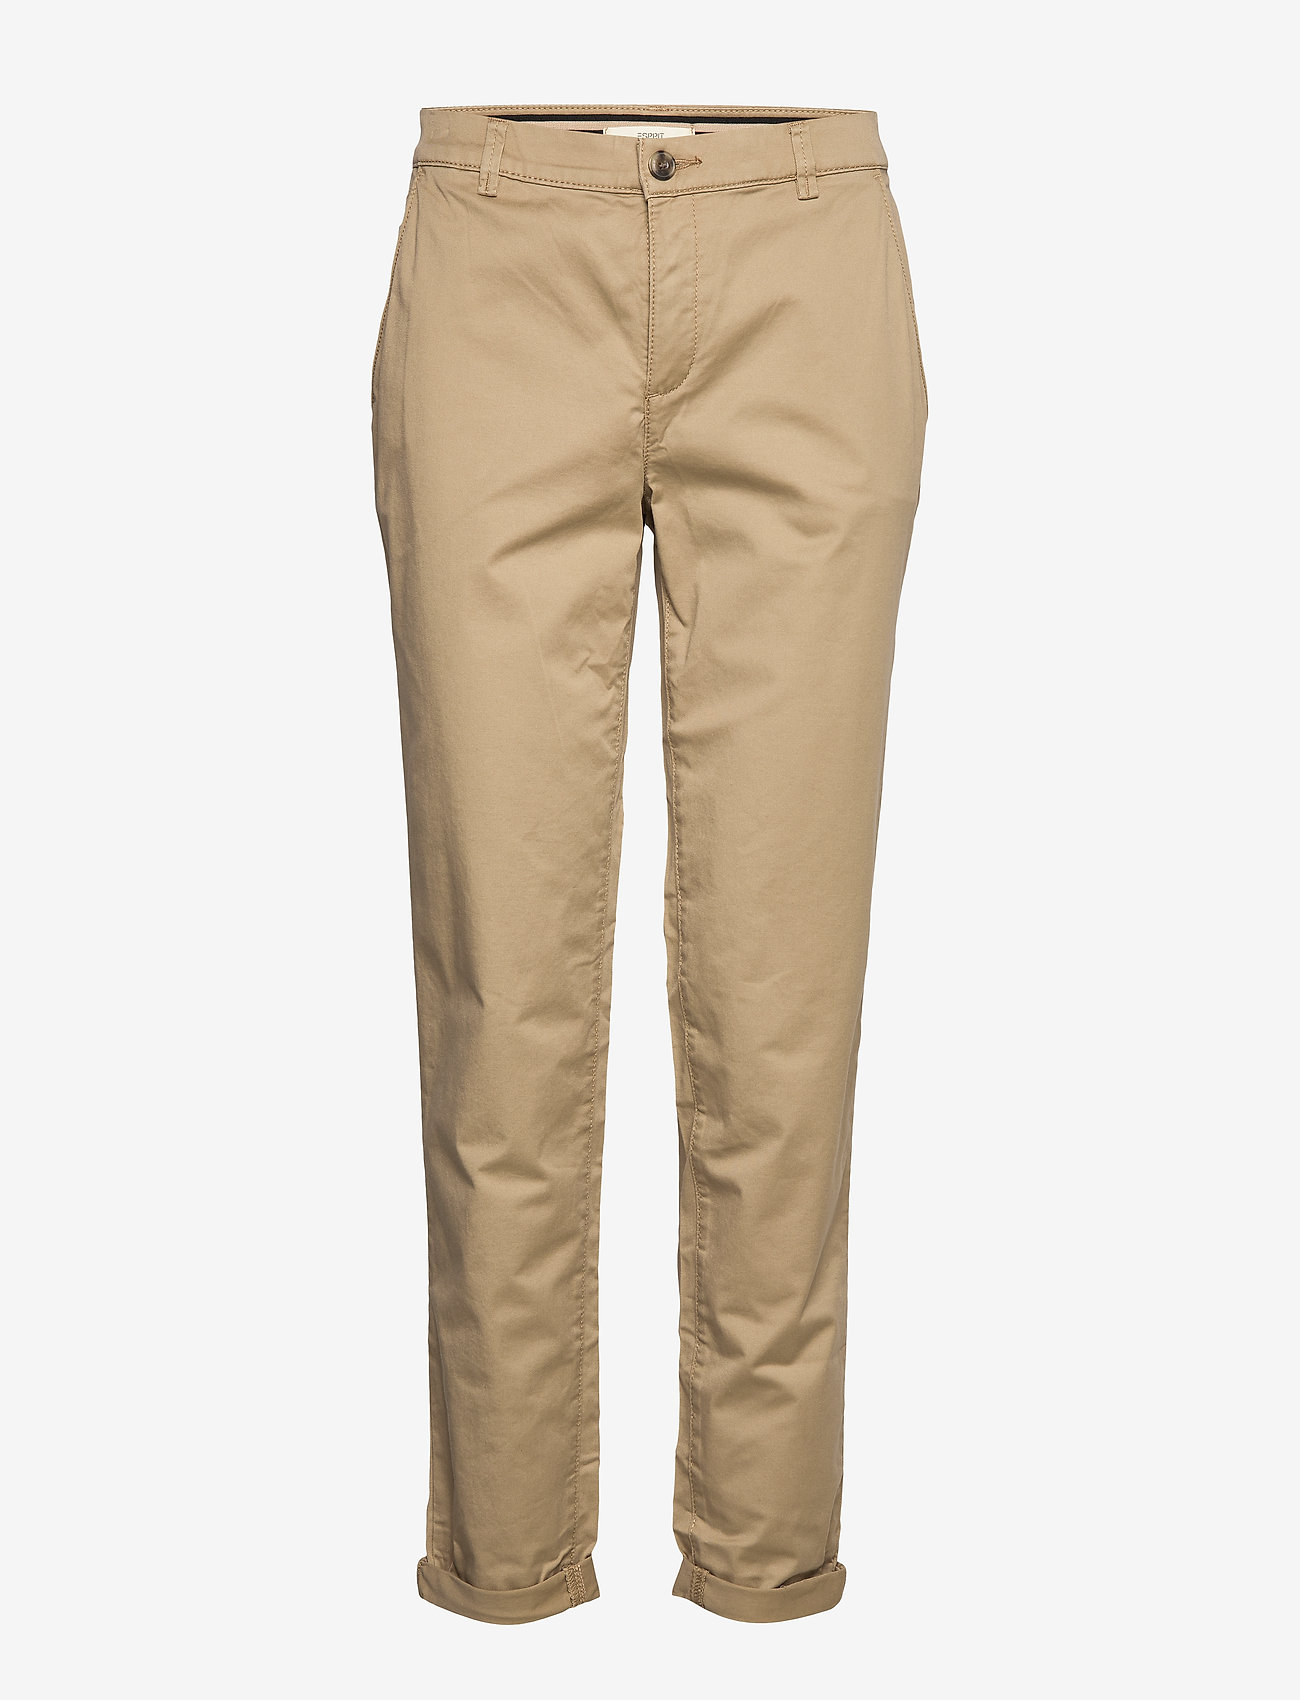 Esprit Casual - Pants woven - chinos - beige - 0